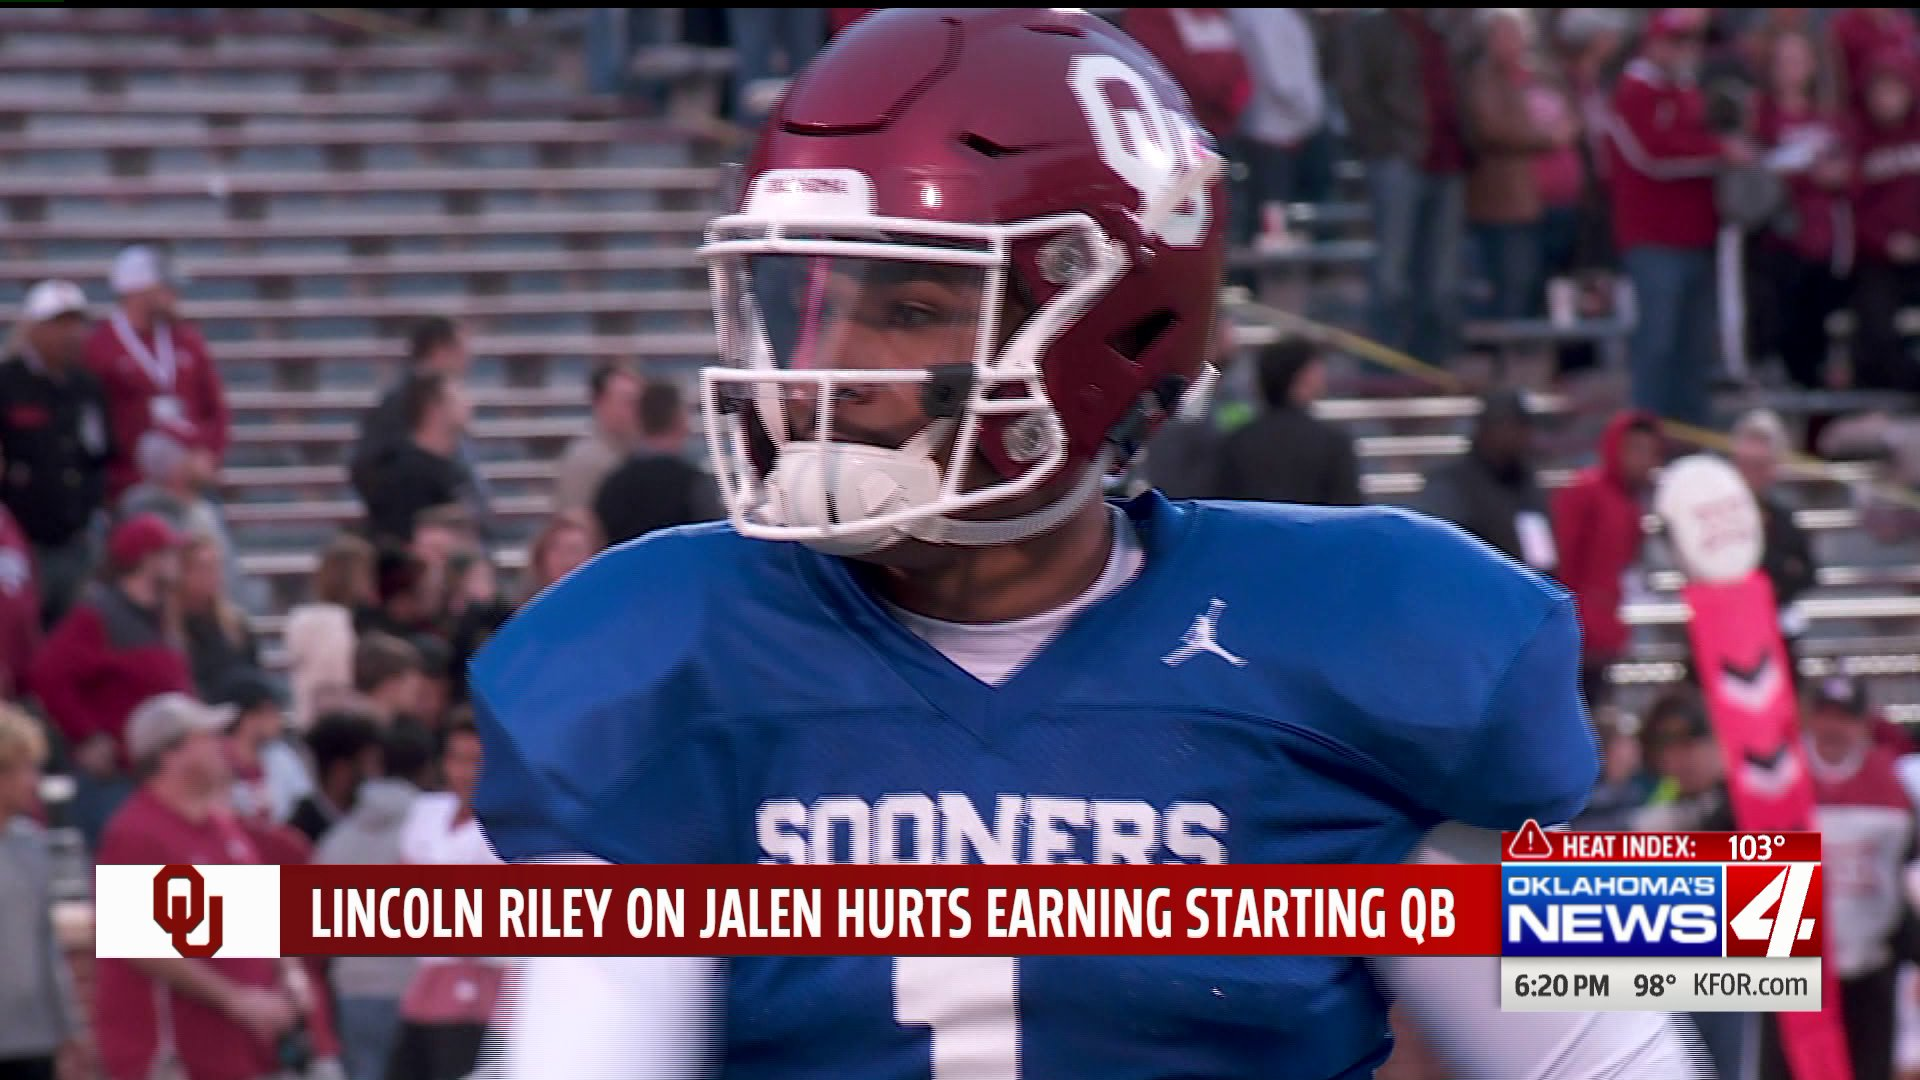 Lincoln Riley Says Jalen Hurts Won